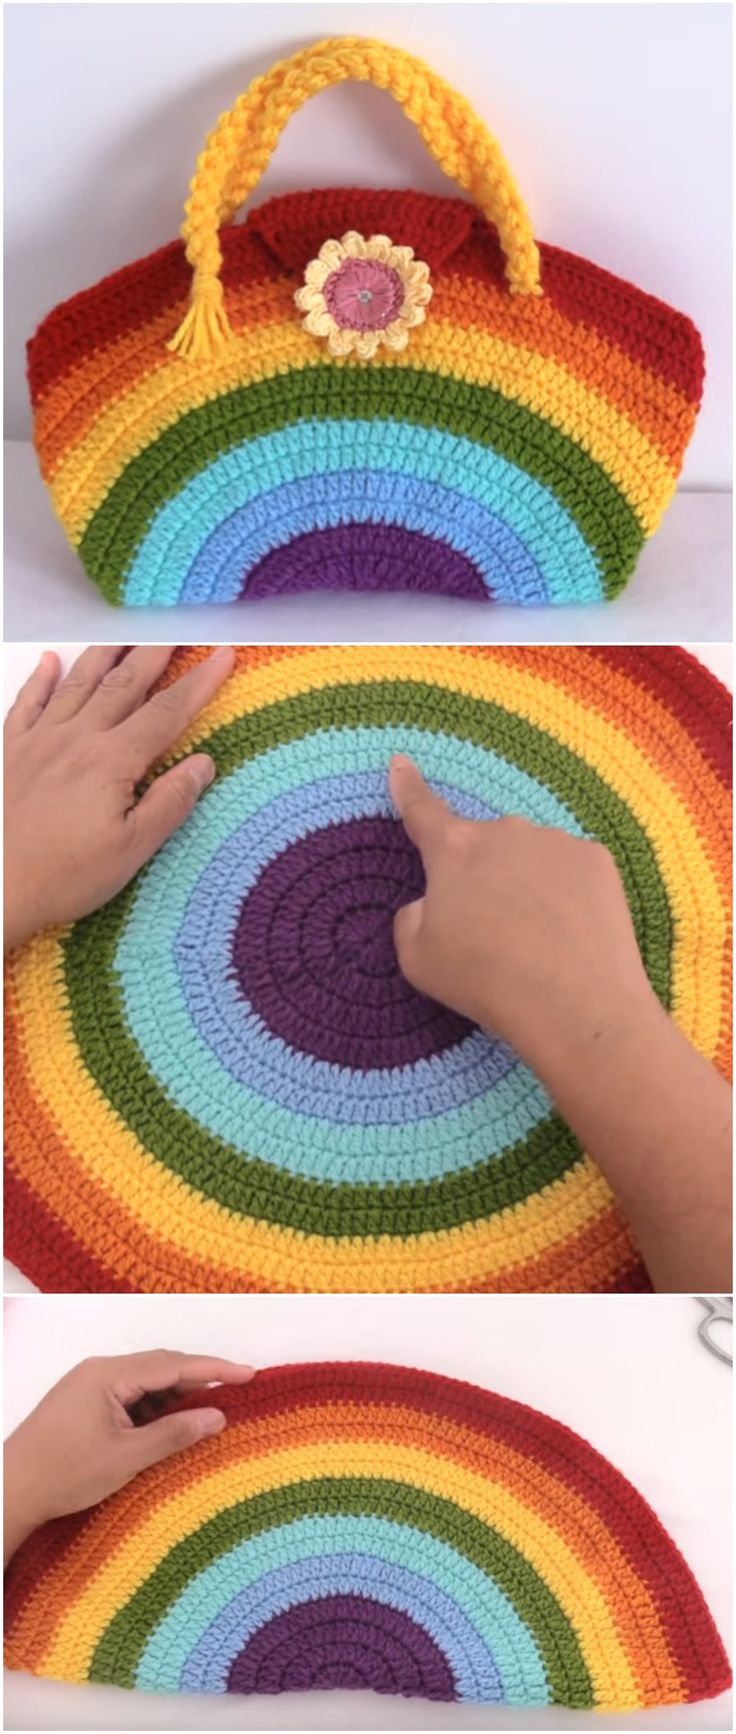 Crochet Rainbow Colored Bag With Flower